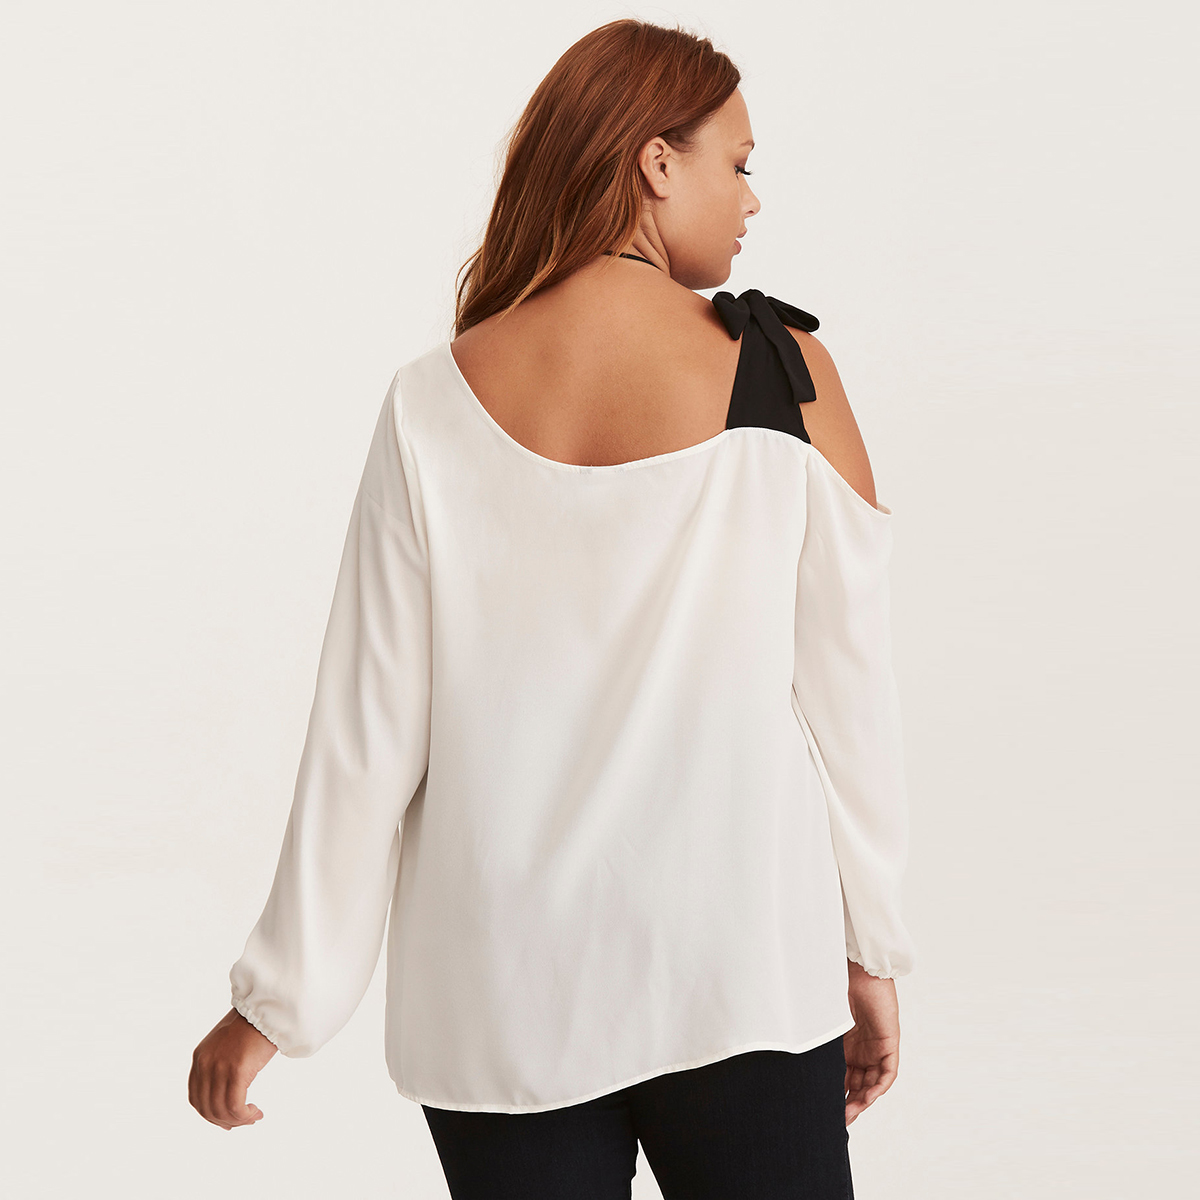 MCO 2018 Spring Sexy Tie One Shoulder Plus Size Women Top Fashion Office Ladies Oversized Blouse Basic OL White Tops 5xl 6xl 7xl 2